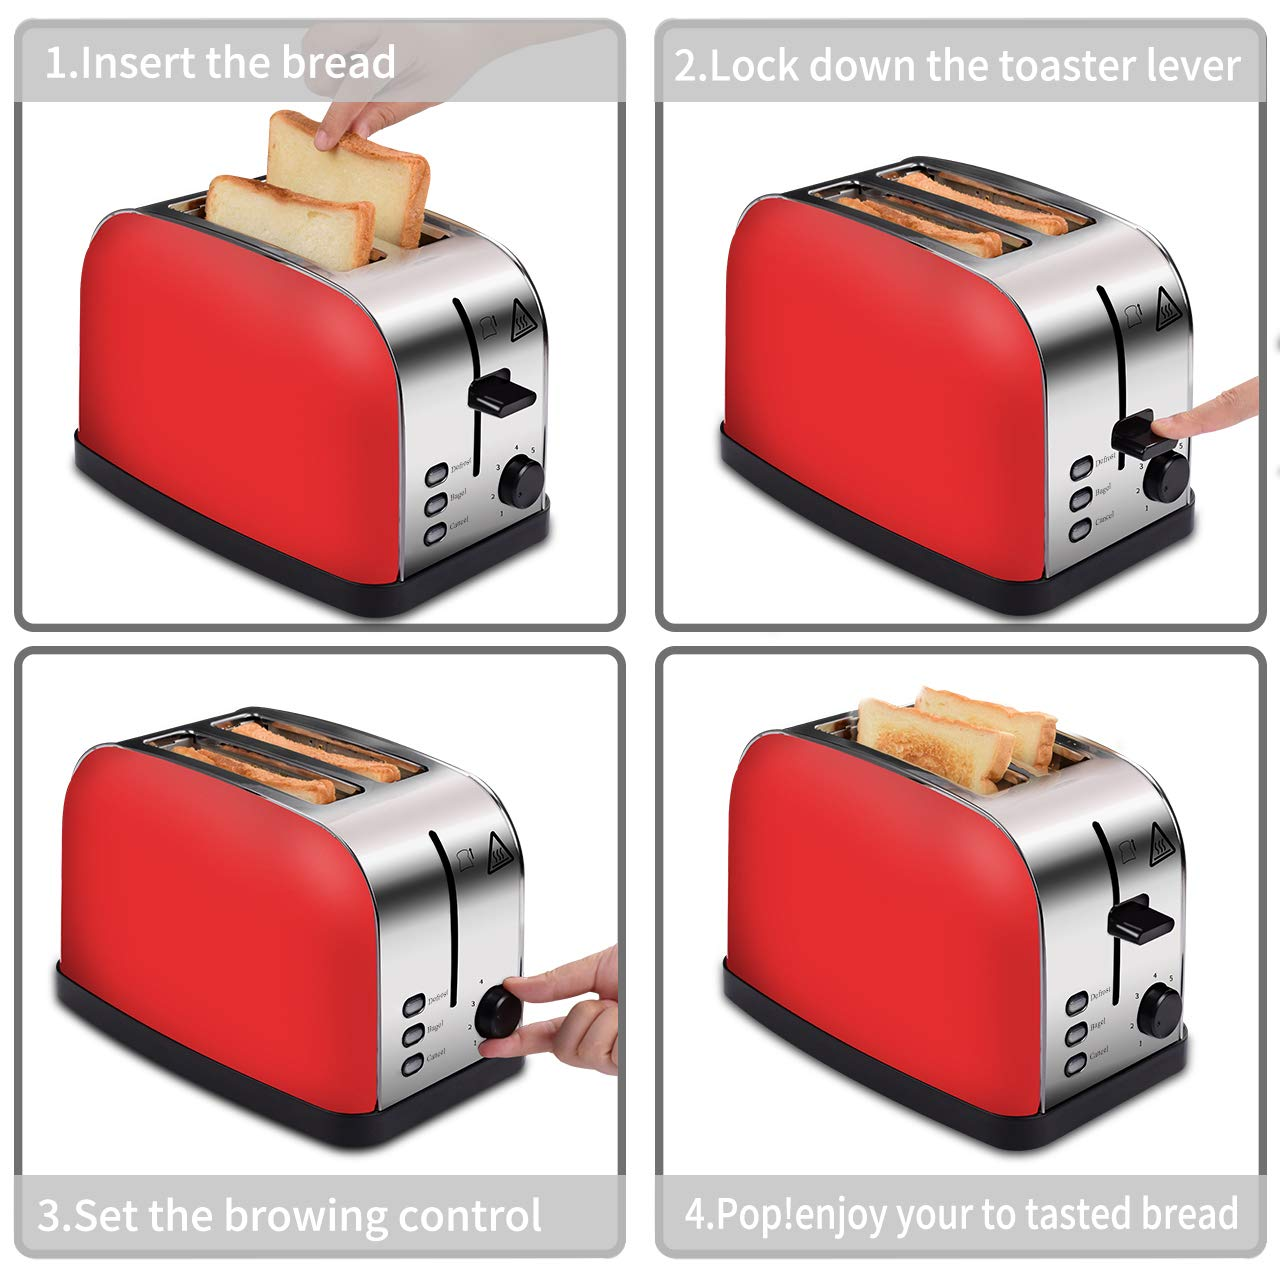 COSSCCI Red Toaster 2 Slice Brushed Stainless Steel Toaster with Wide Slots,Removable Crumb Tray,High Lift Lever, Reheat Defrost and 7 Shade Setting